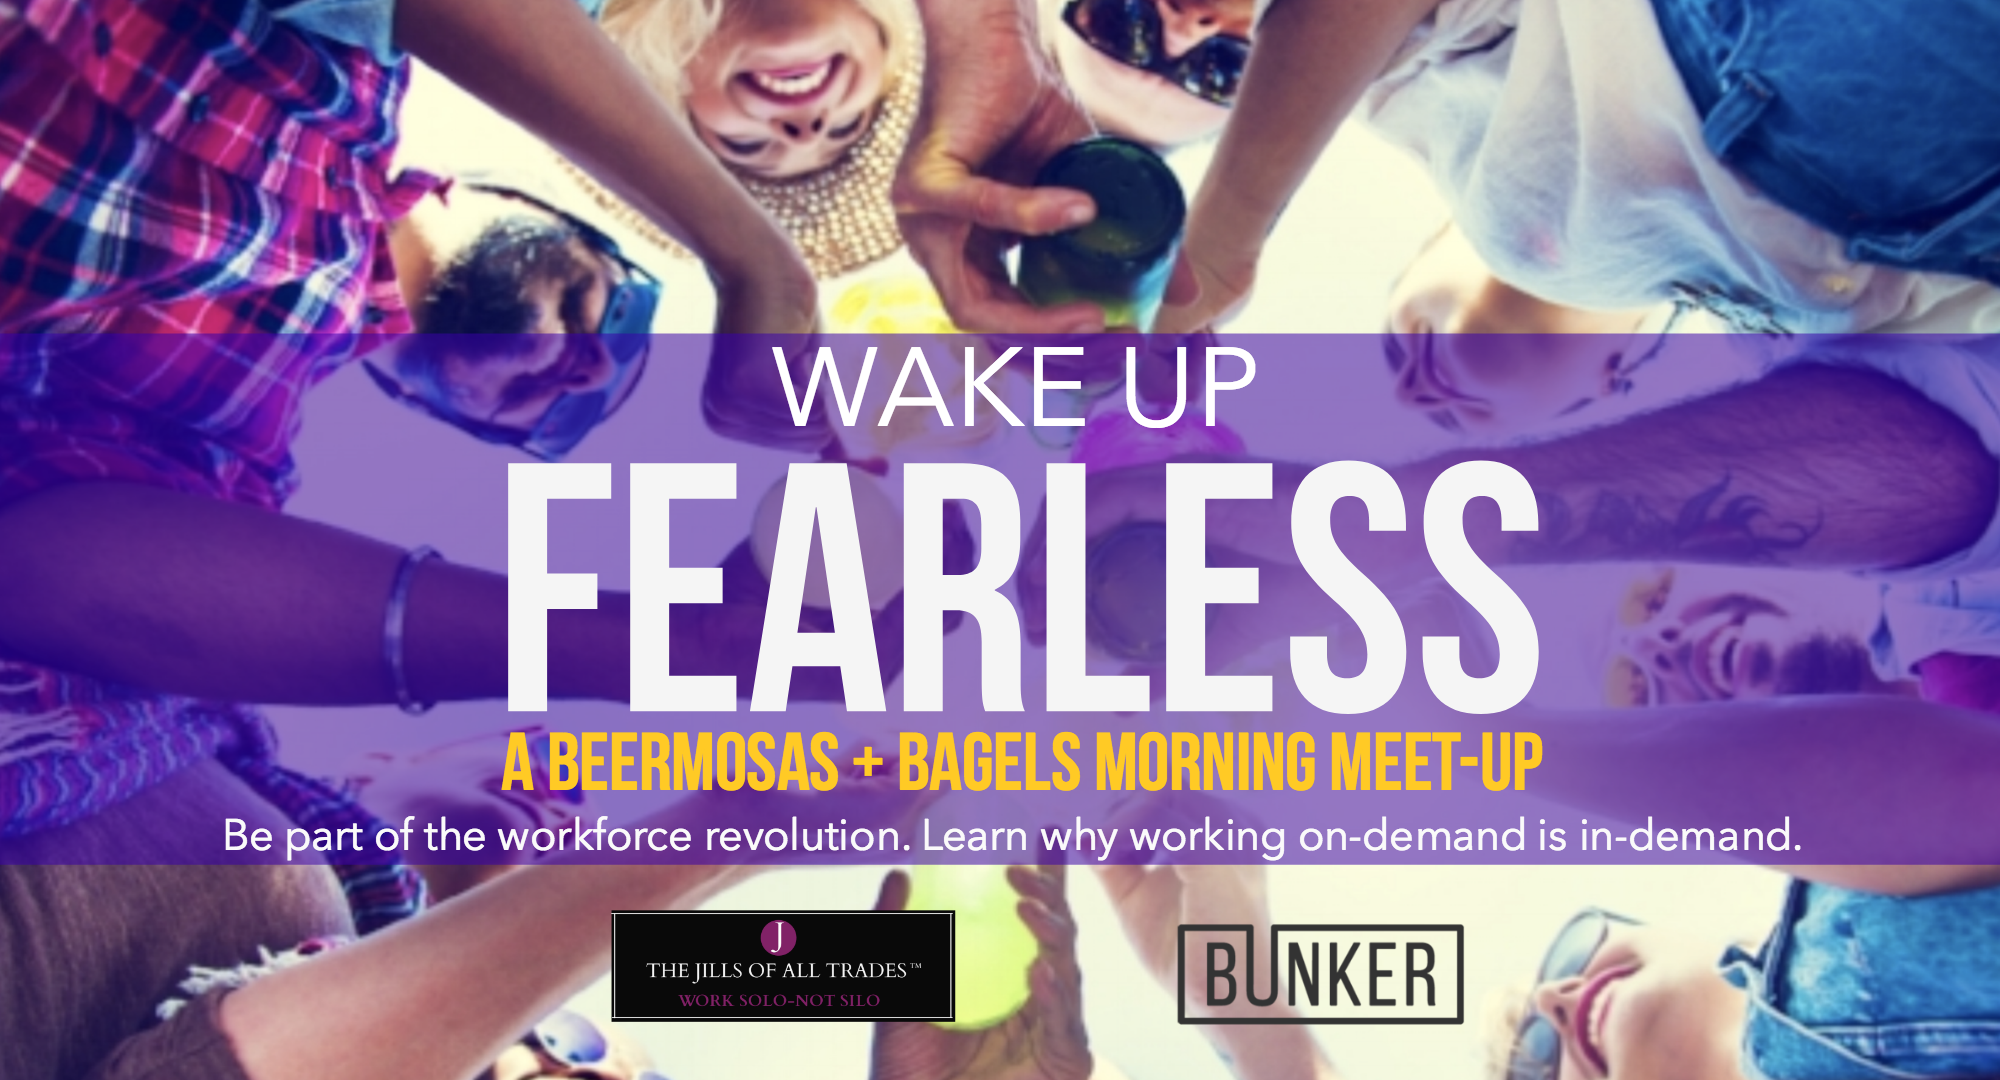 Wake Up Fearless- Bunker + THE JILLS OF ALL TRADES™ morning meet-up, August 17, 2018- FORWARD FEST 2018, Madison, WI